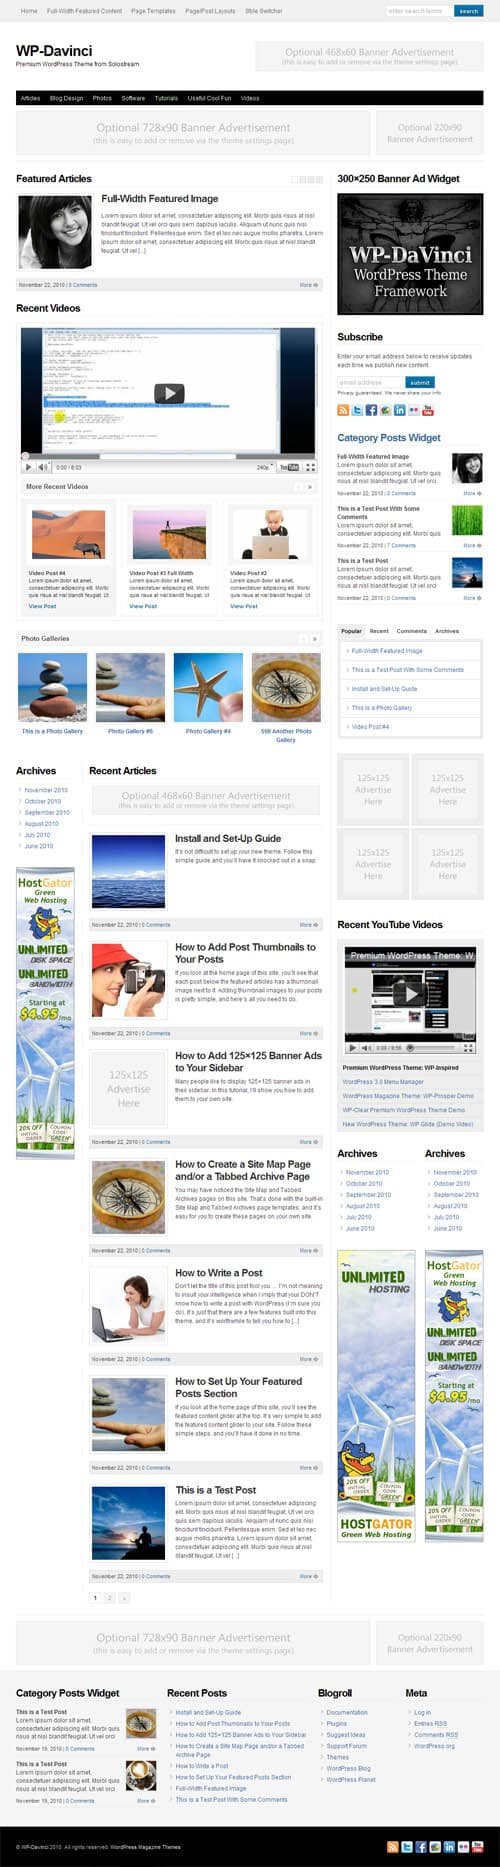 wp-davinci-wordpress-theme